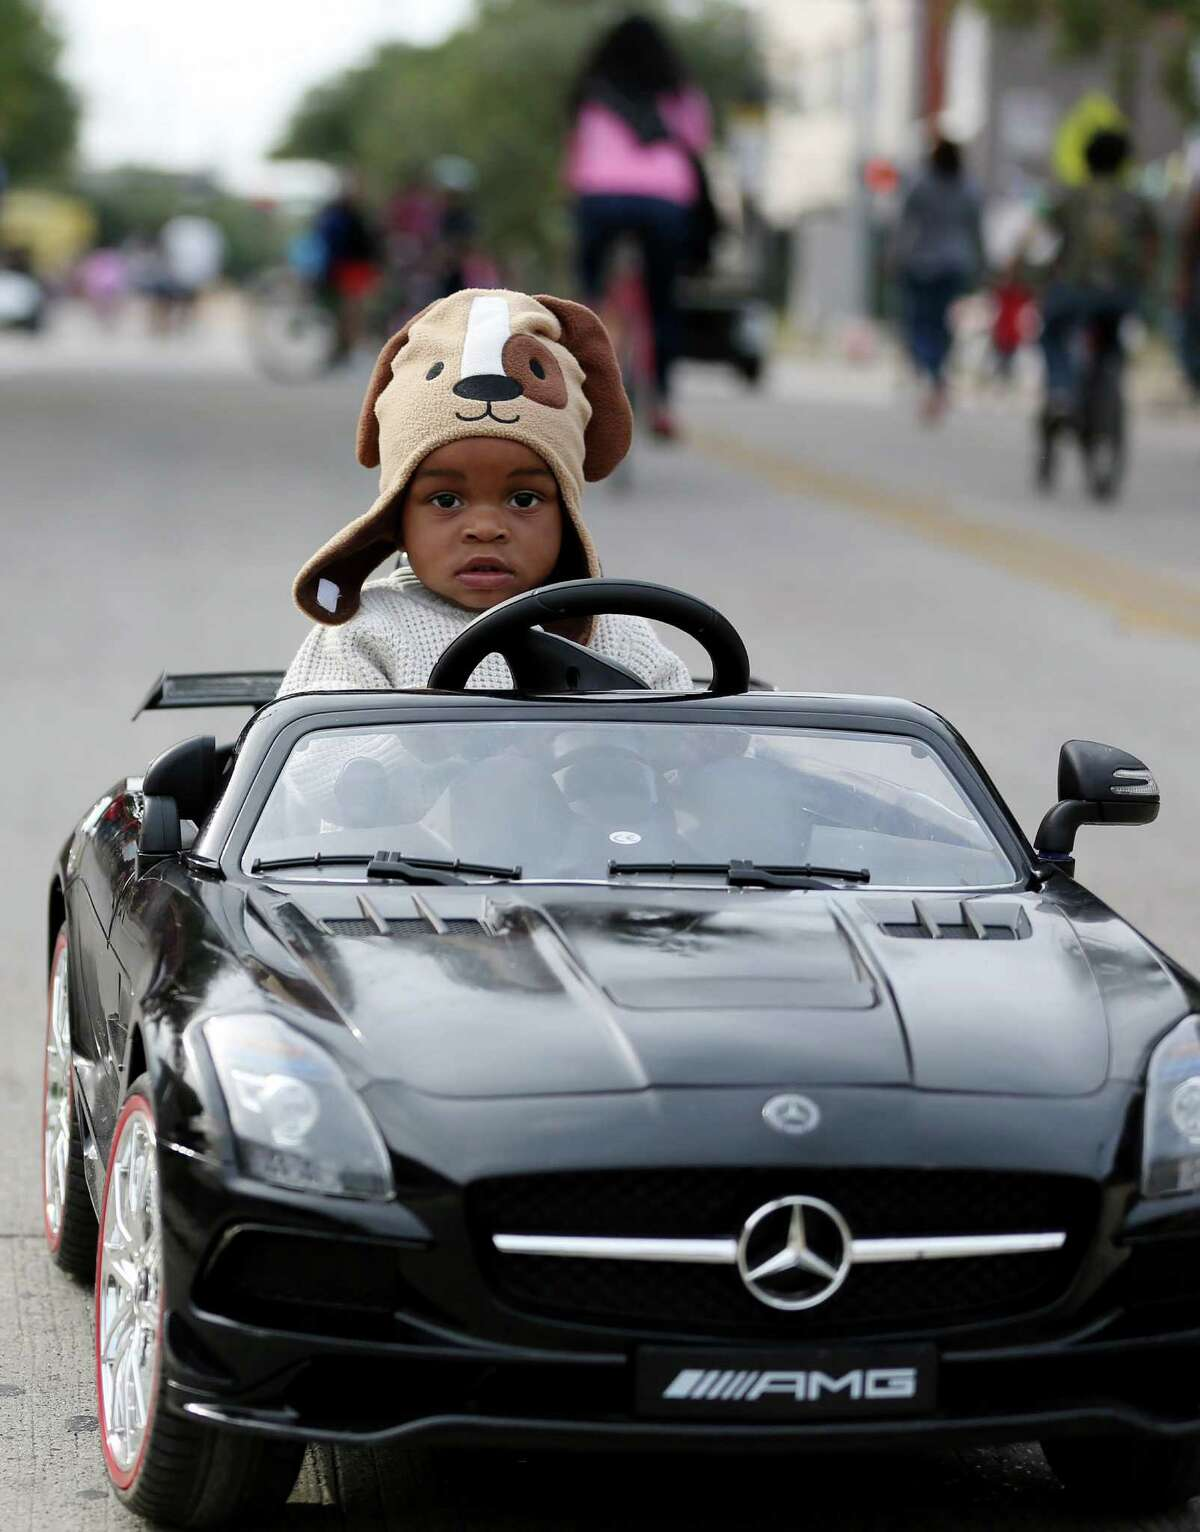 Reese Norman, 1, rides his remote parental control car controlled by his father, Ronald Norman, going down Lyons Avenue at Cigna Sunday Streets in Fifth Ward Sunday, Nov. 13, 2016, in Houston.